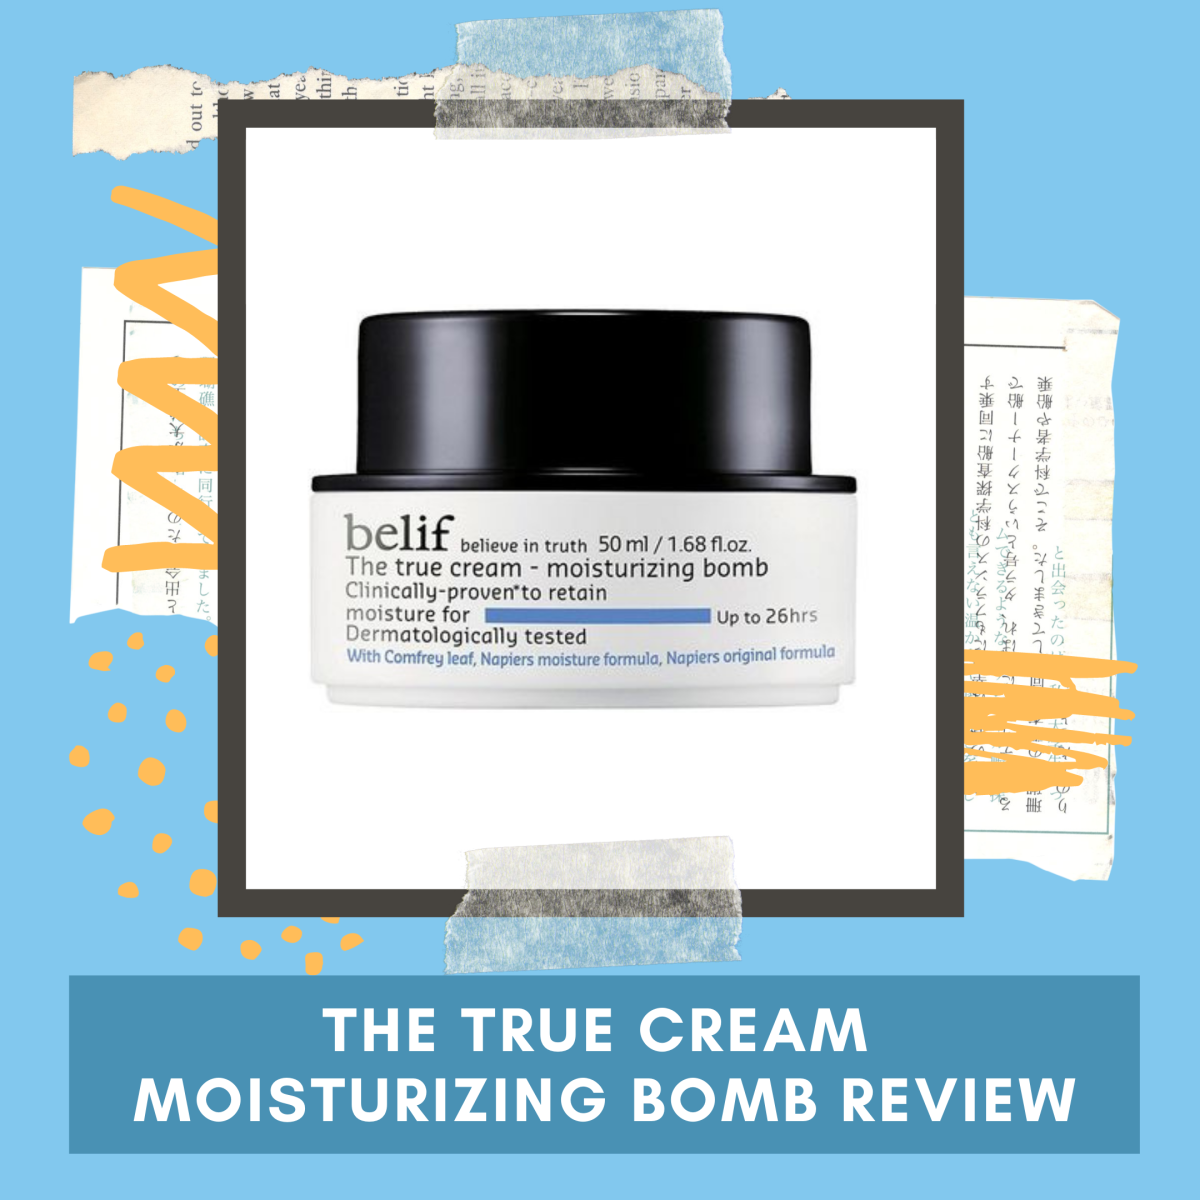 Belif The True Cream—Moisturizing Bomb Review